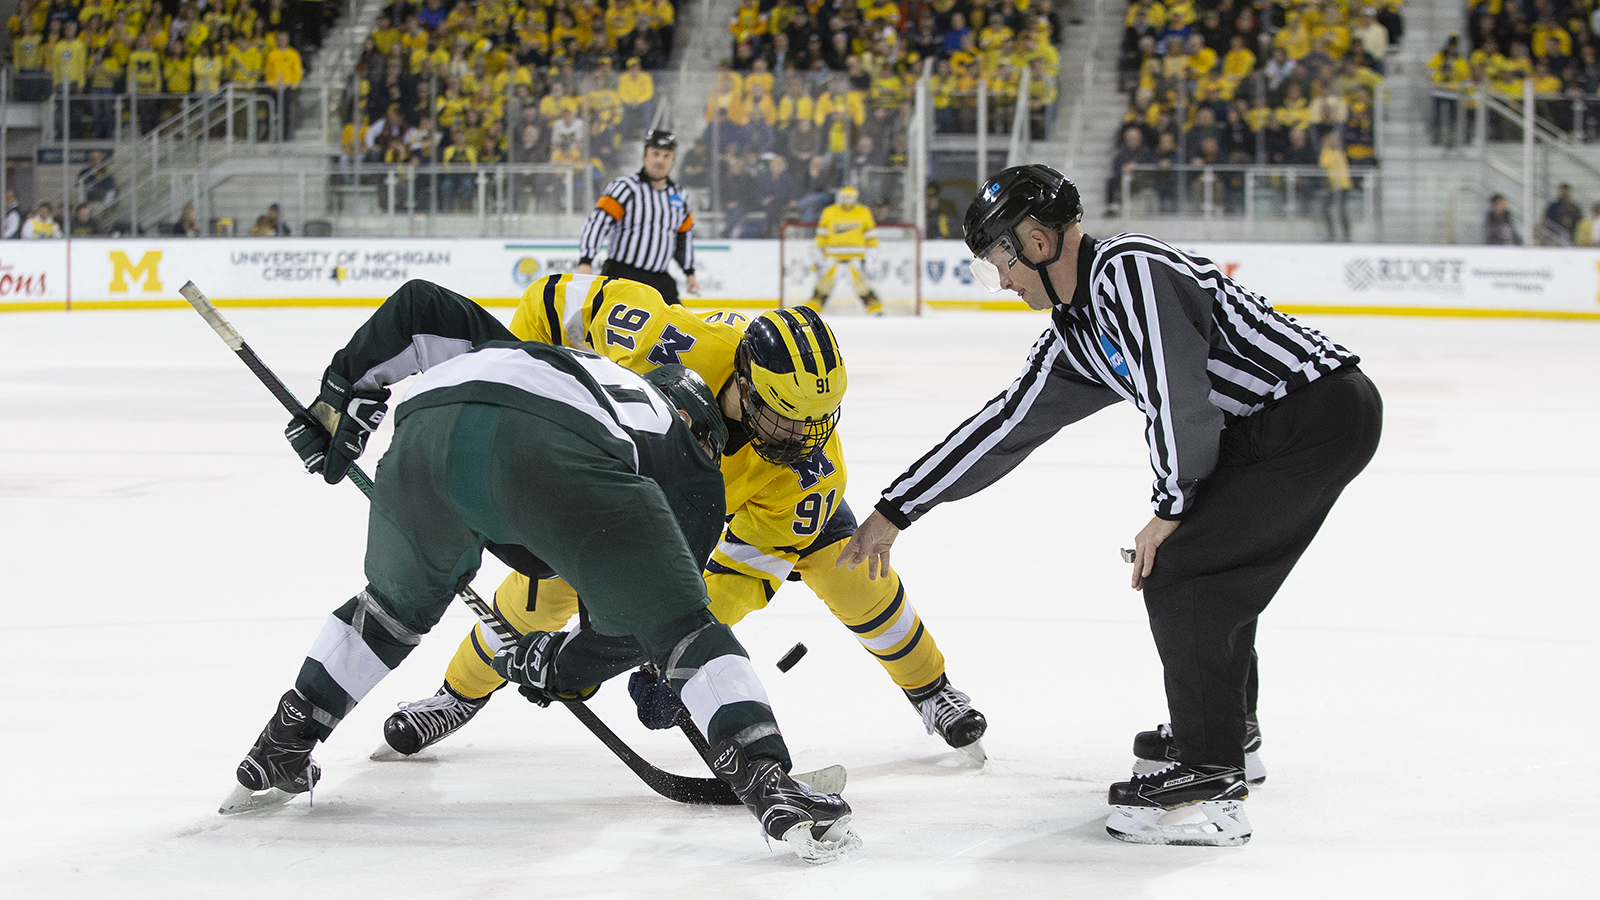 85a3057be1b Michigan Set for Rivalry Weekend Series with Michigan State ...